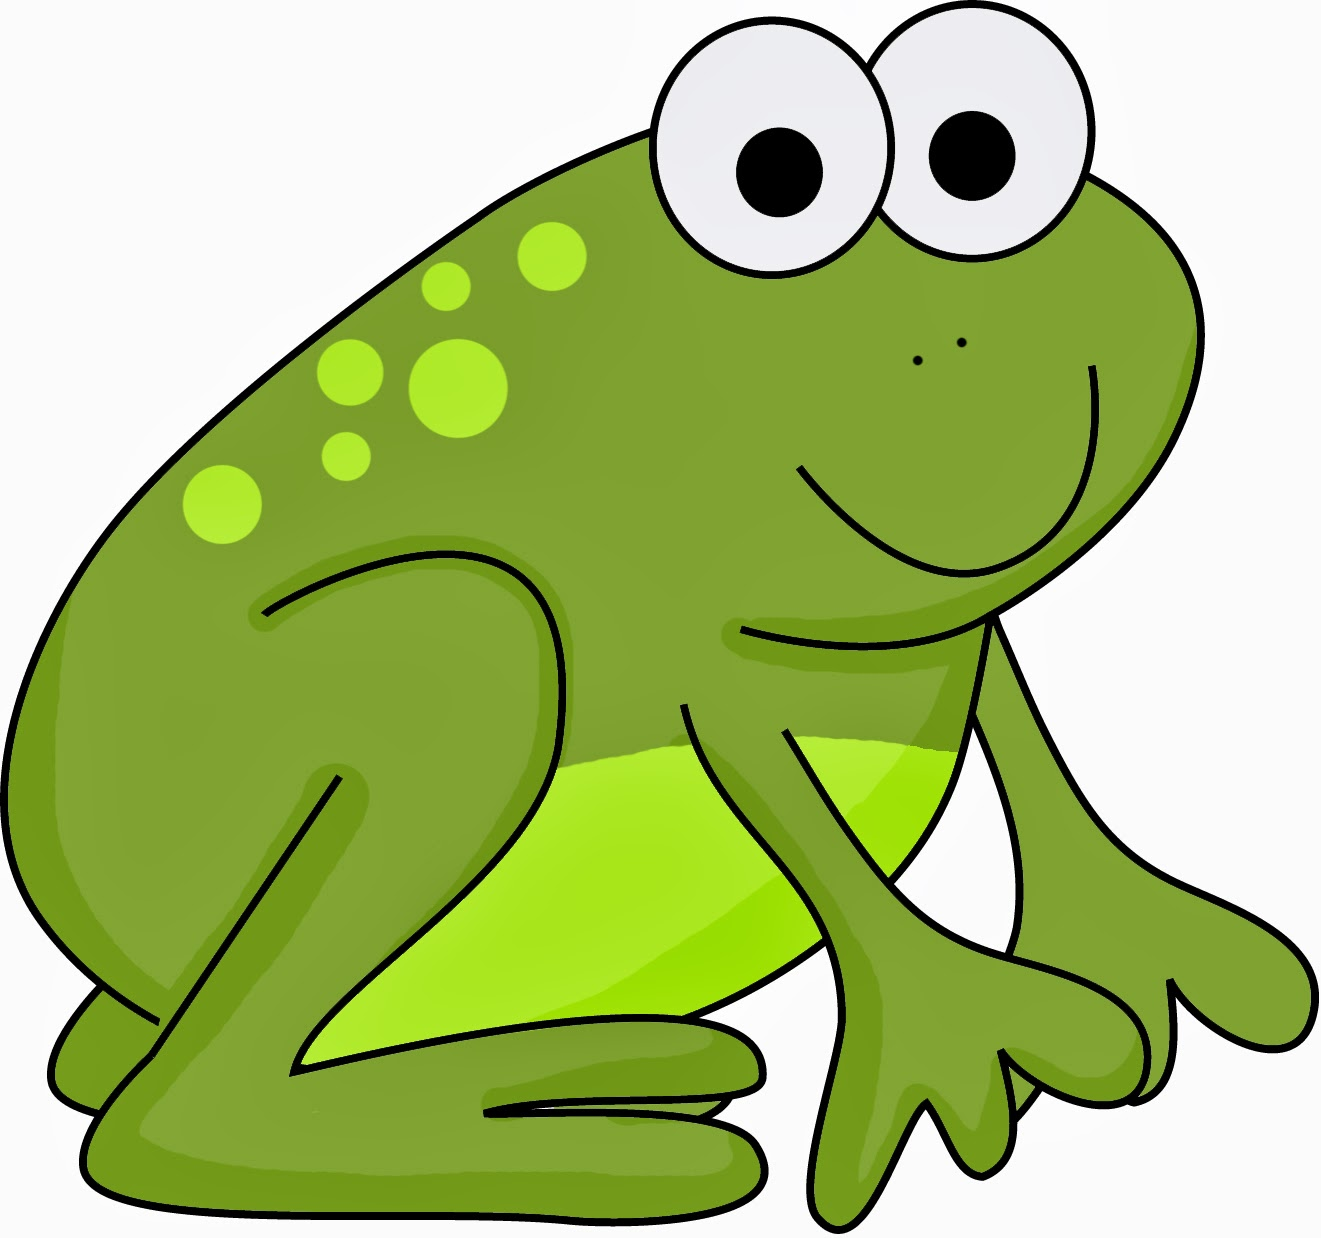 cultura do sonho significado dos sonhos o que significa frog and toad together clipart frog and toad clip art arnold lobel